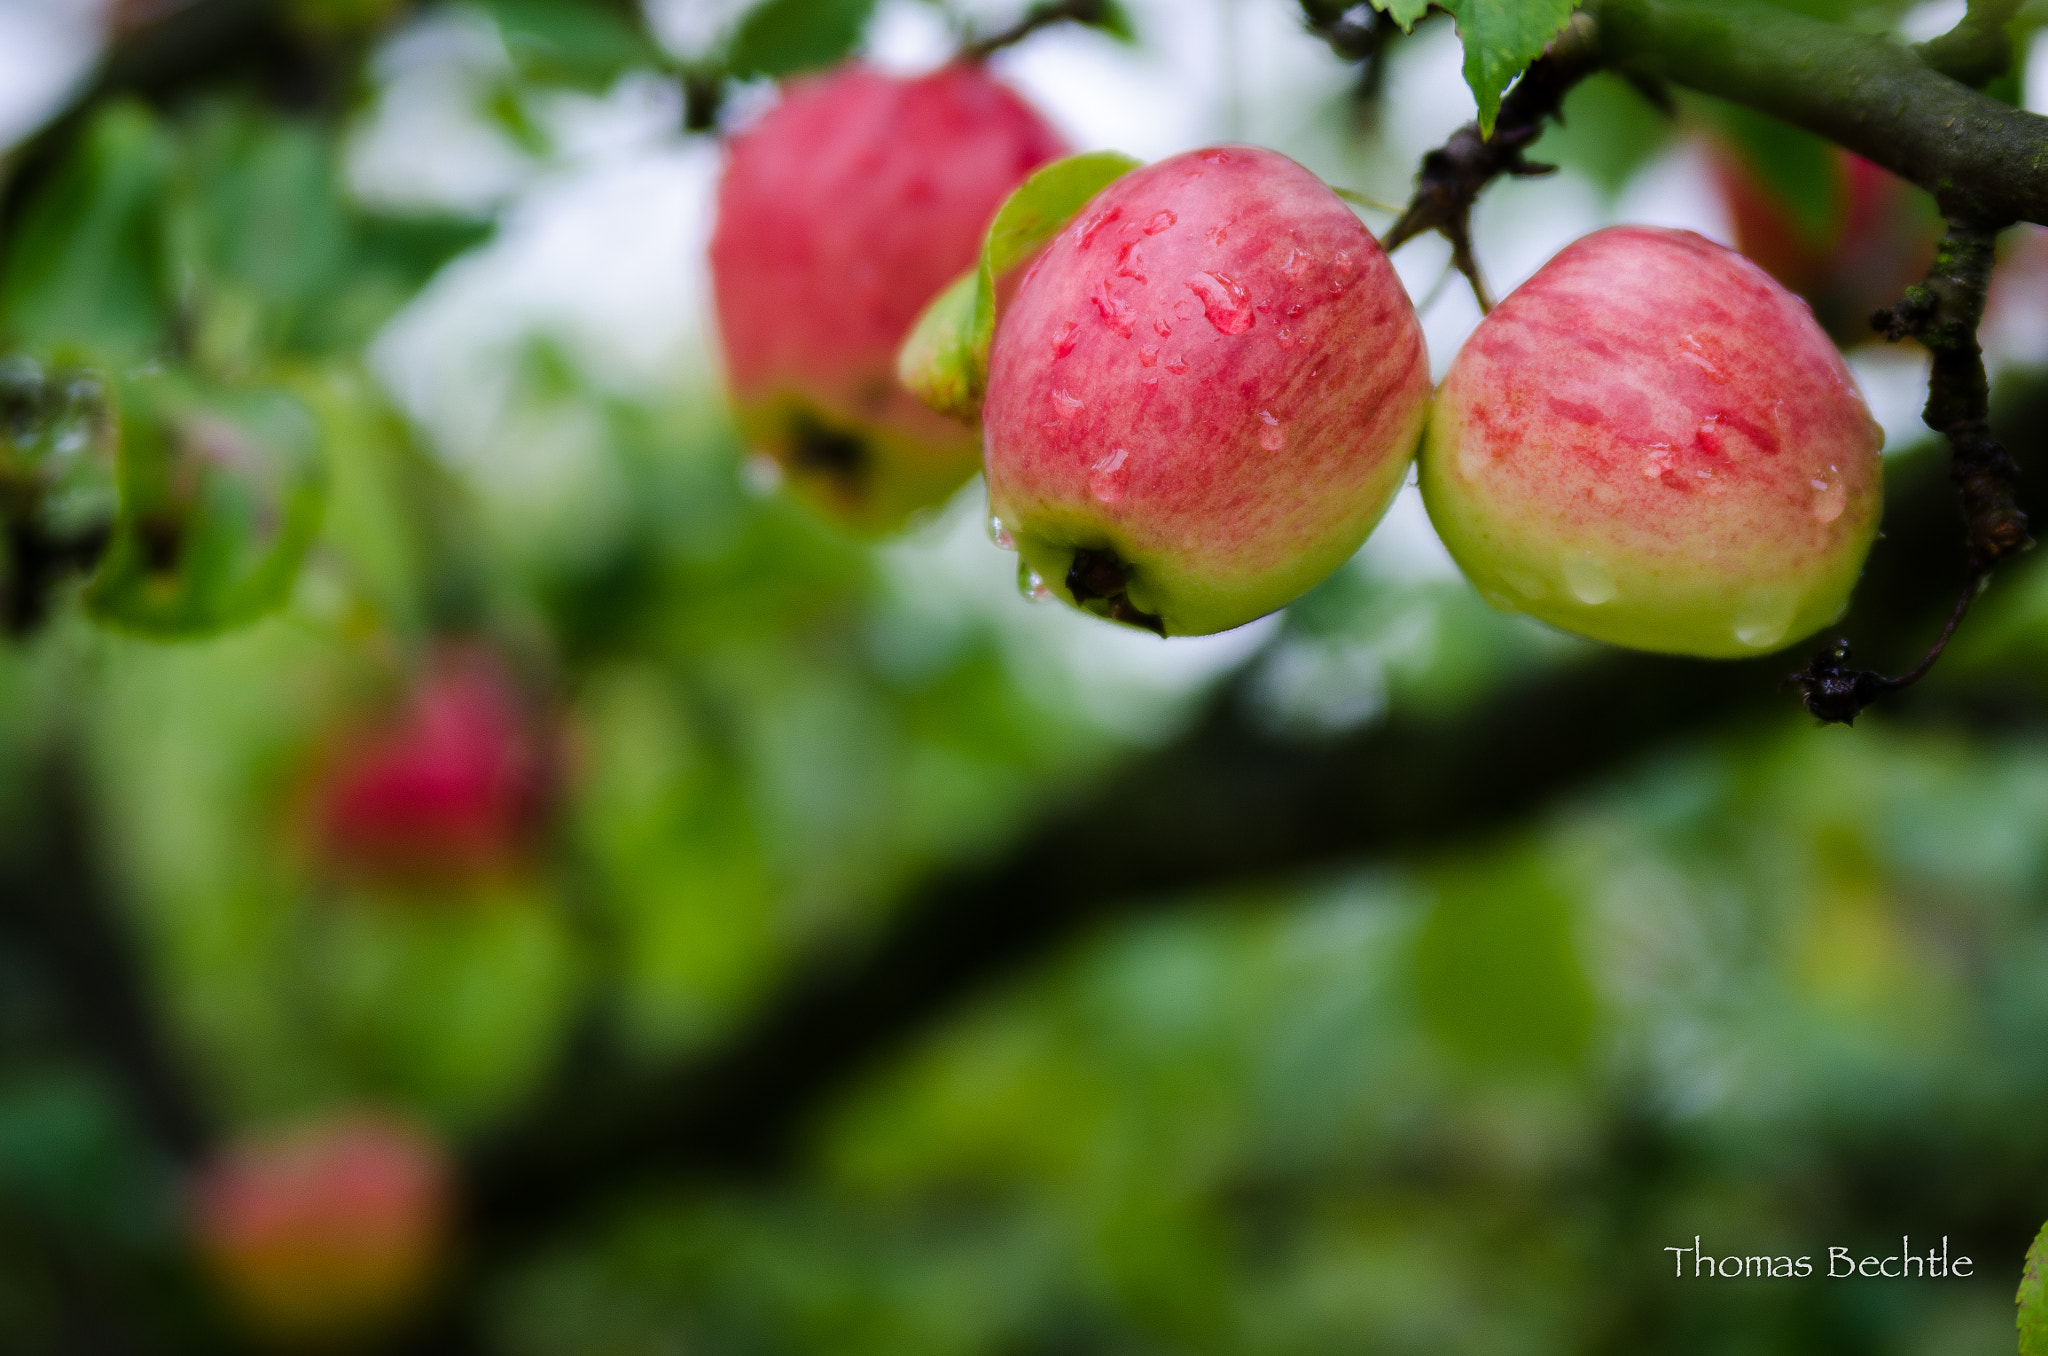 Photograph Under the apple tree by Thomas Bechtle on 500px